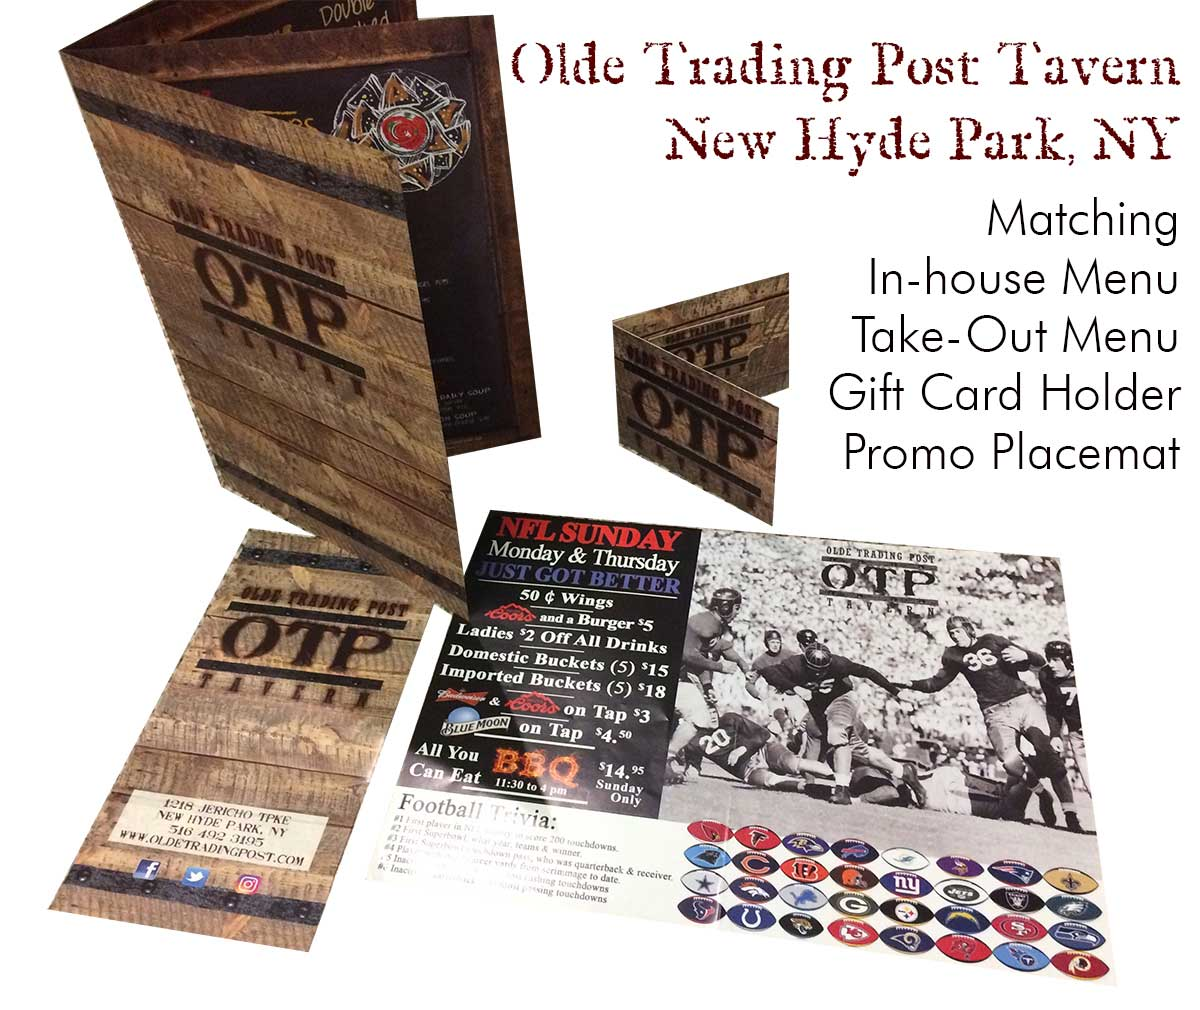 Olde Trading Post Tavern - The Menu Store Previous Clients